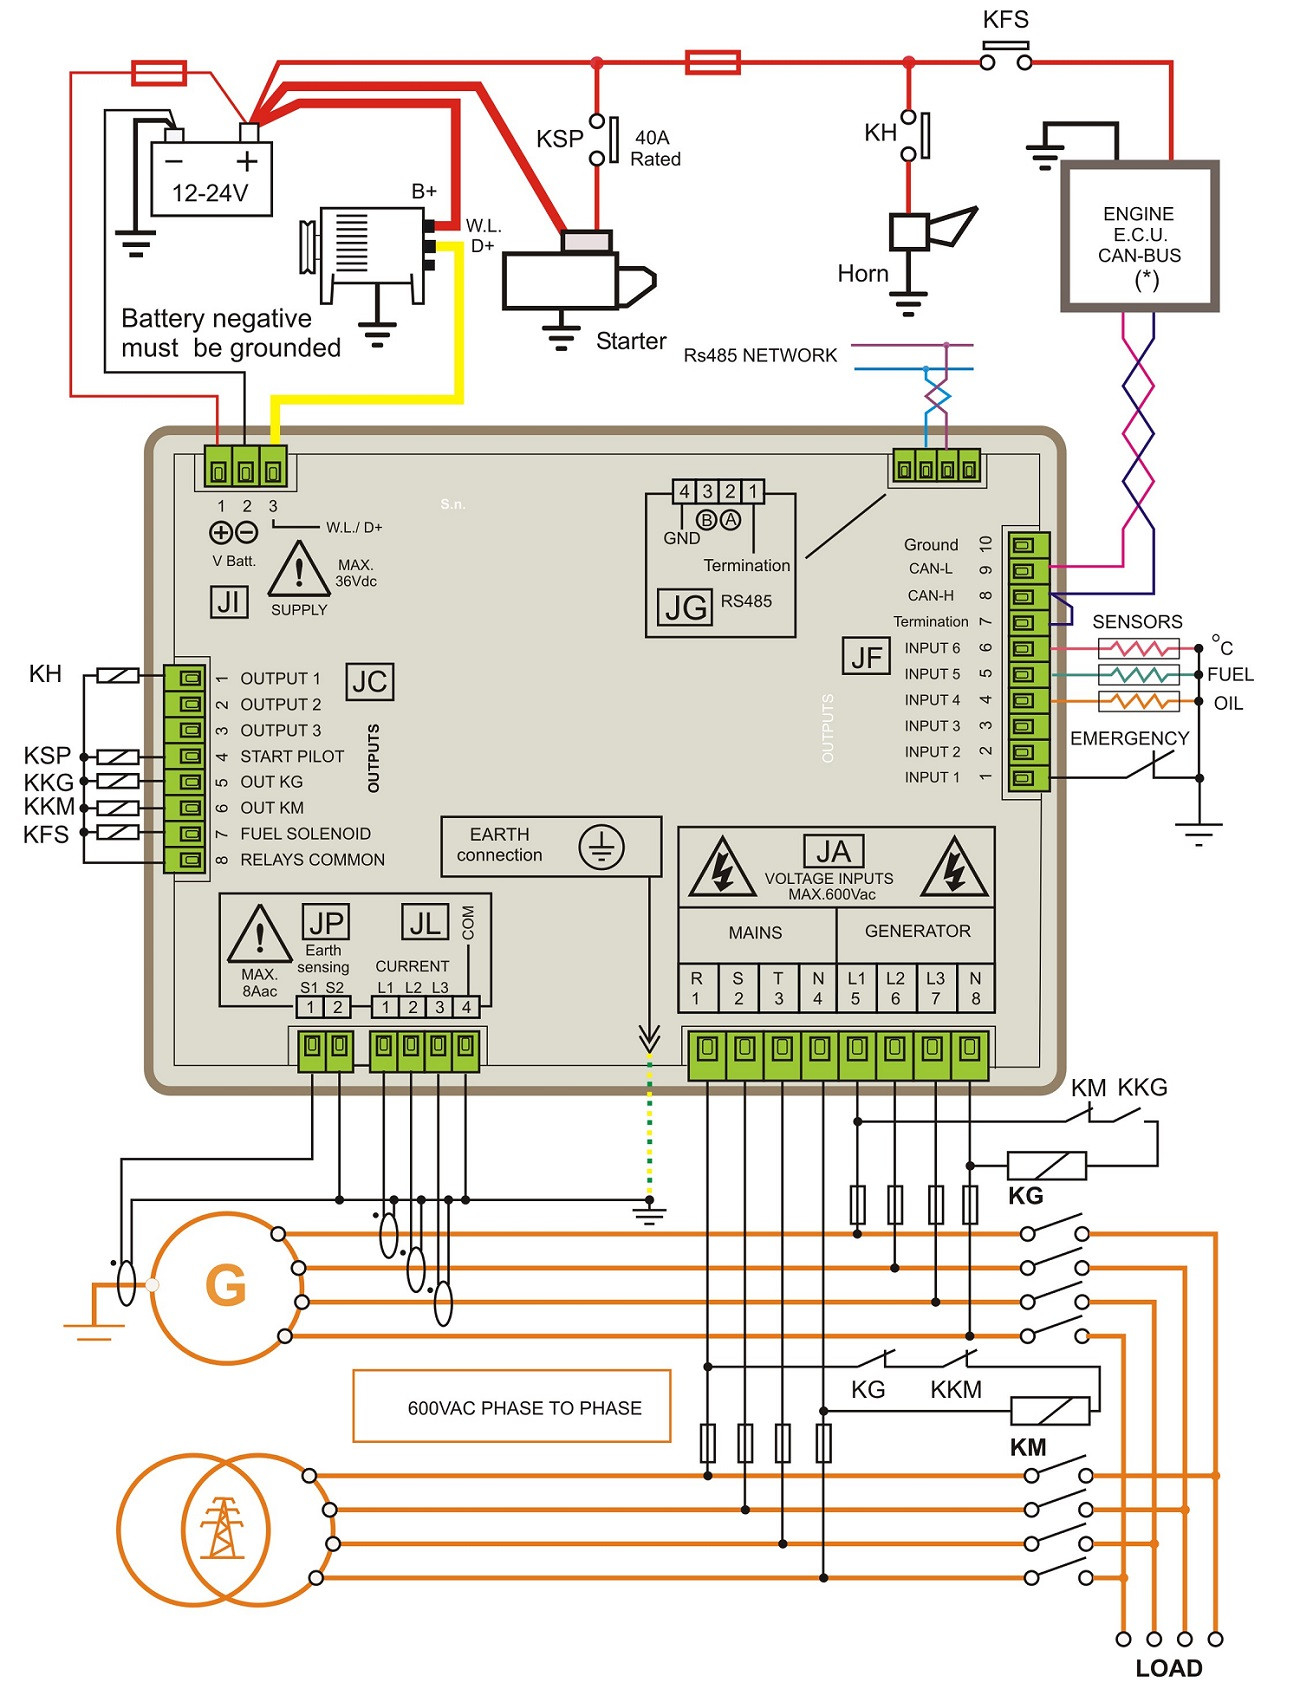 maintenance byp switch wiring diagram ups    maintenance    bypass    switch       wiring       diagram    gallery  ups    maintenance    bypass    switch       wiring       diagram    gallery